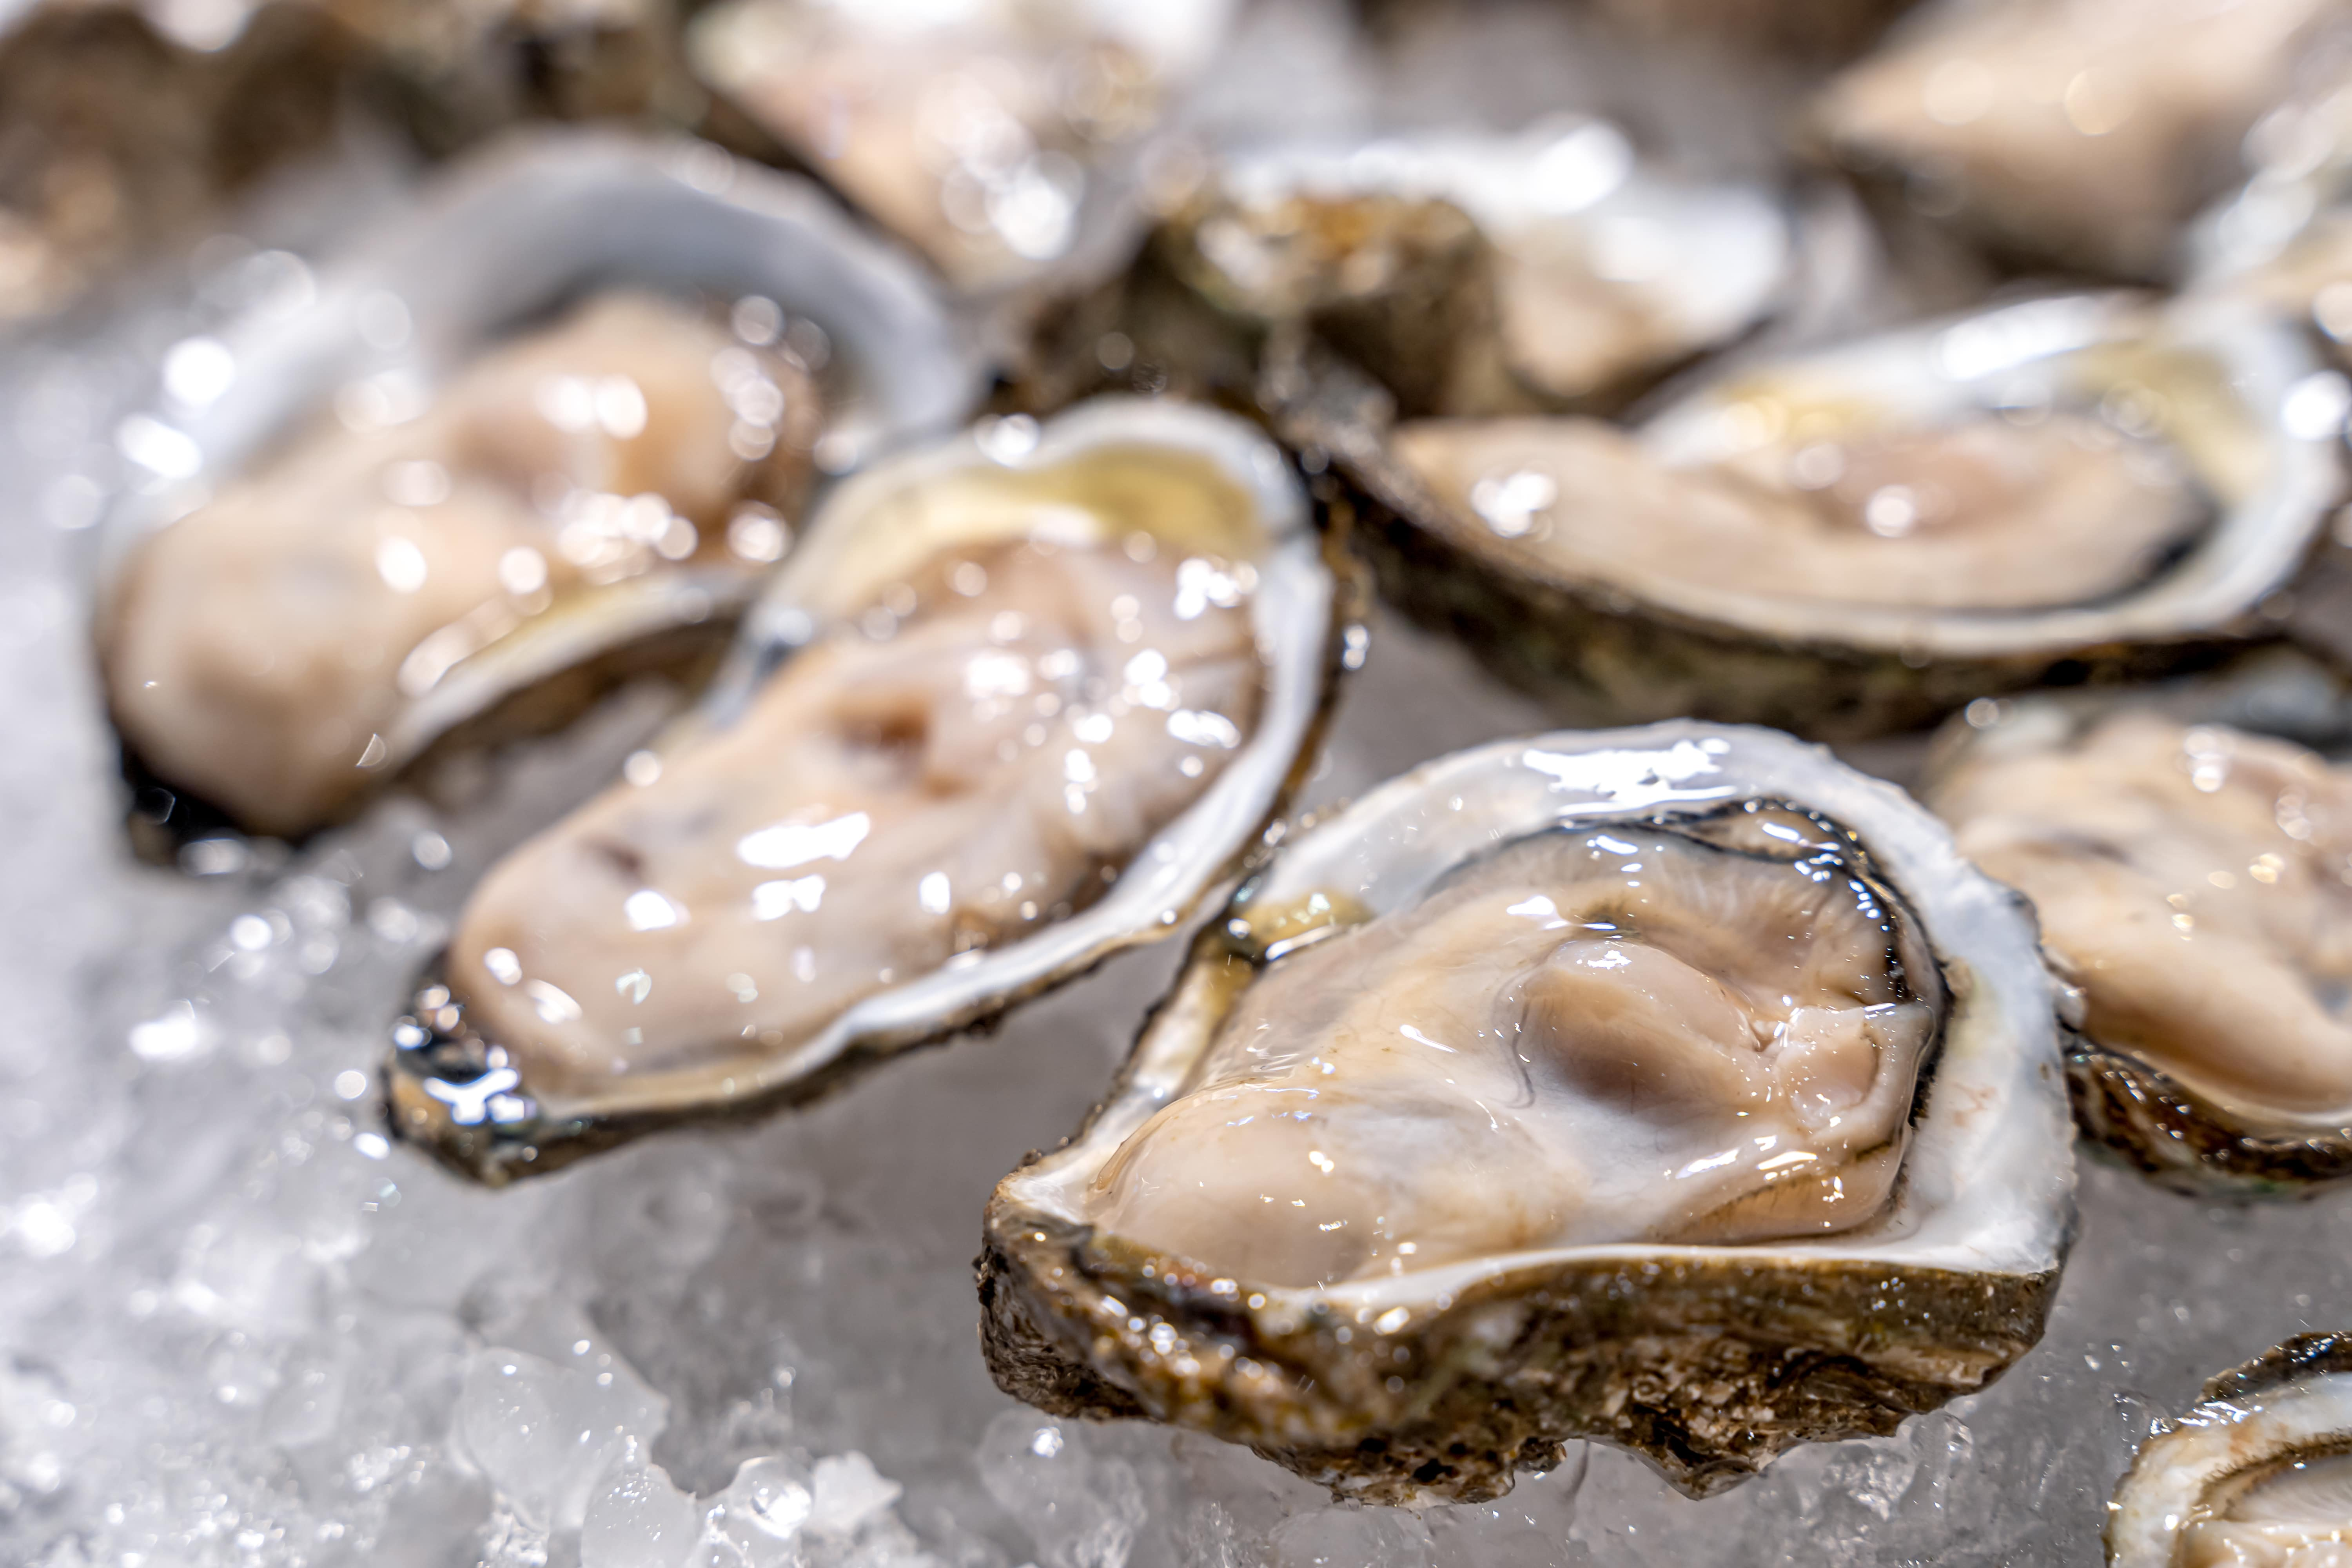 Fresh oysters served on a platter at Cambuhat Oyster Village